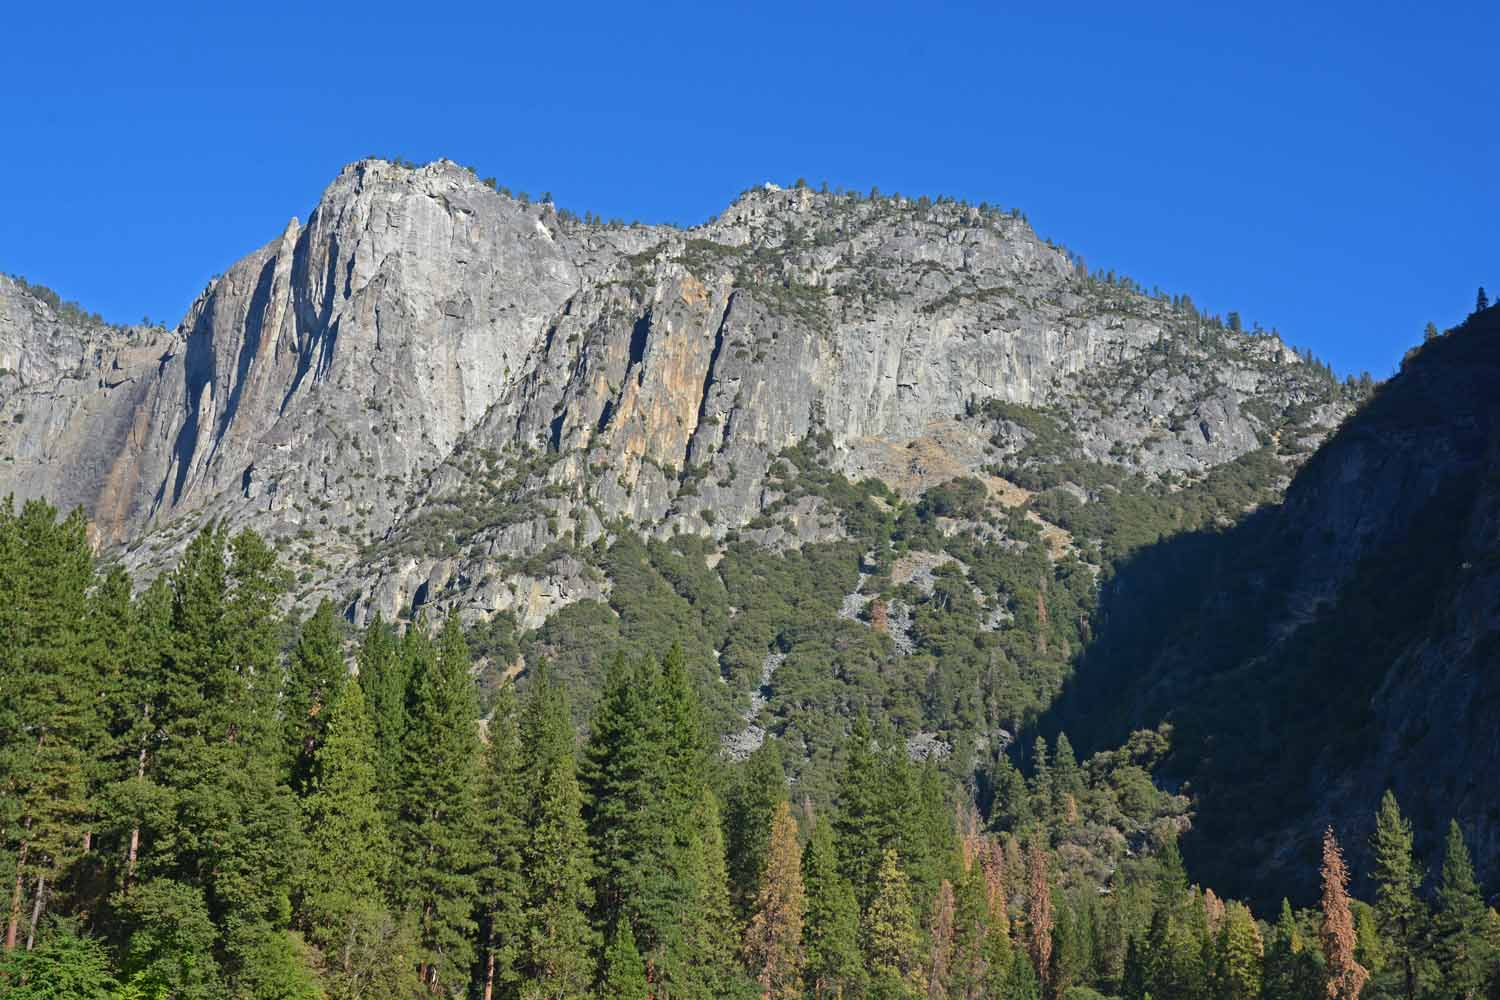 Lots of granite in Yosemite.  One of the more famous is El Capitan.  It is imposing and very photogenic in the valley looking up!